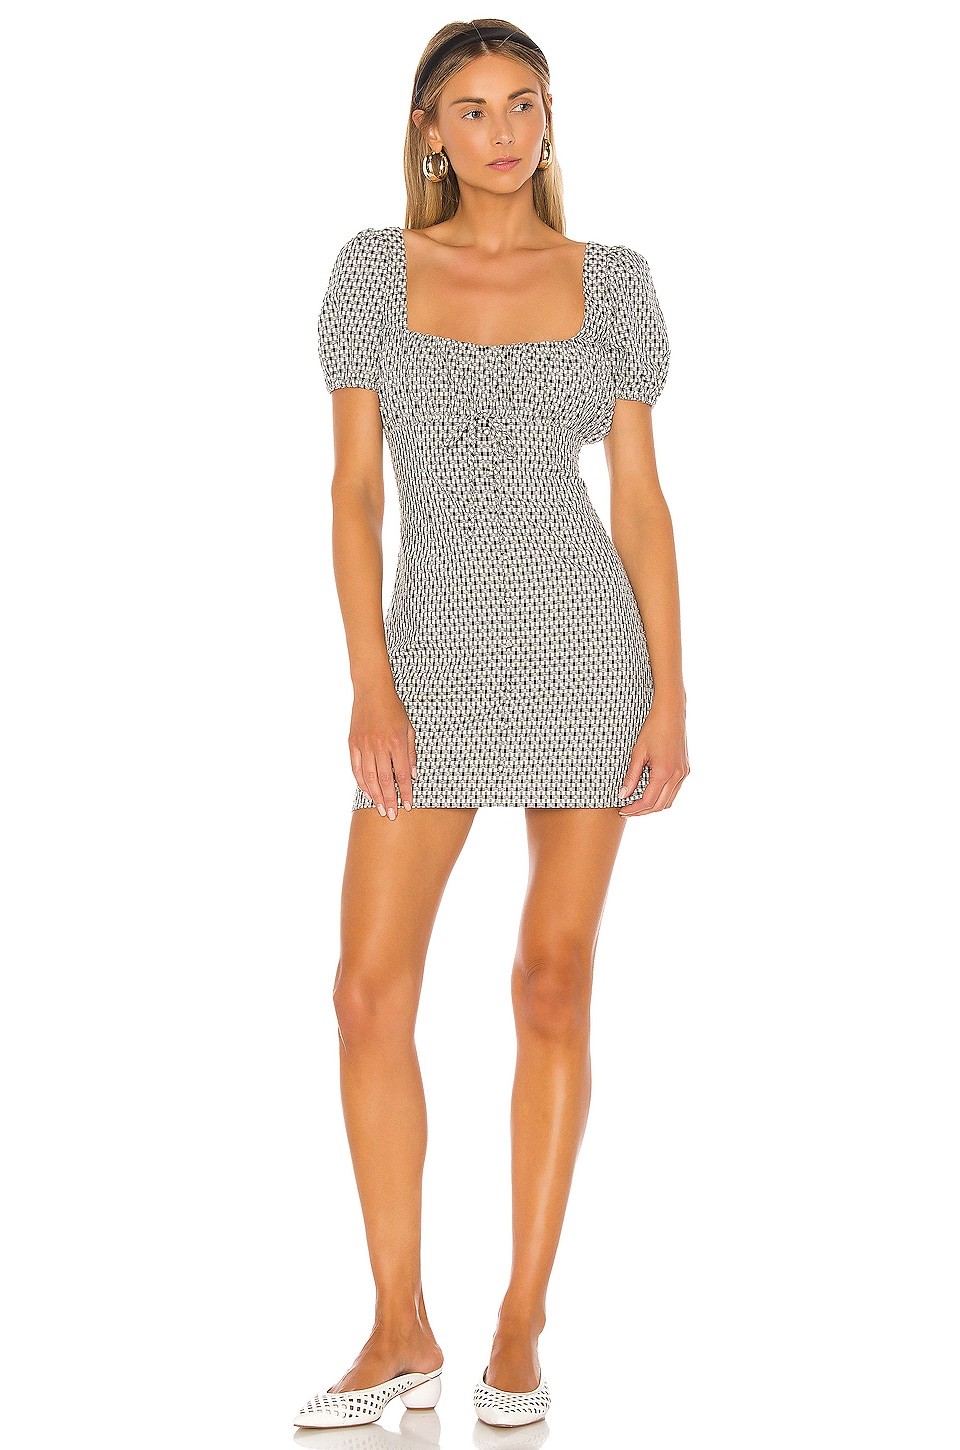 Privacy Please Elisa Mini Dress in Black & White